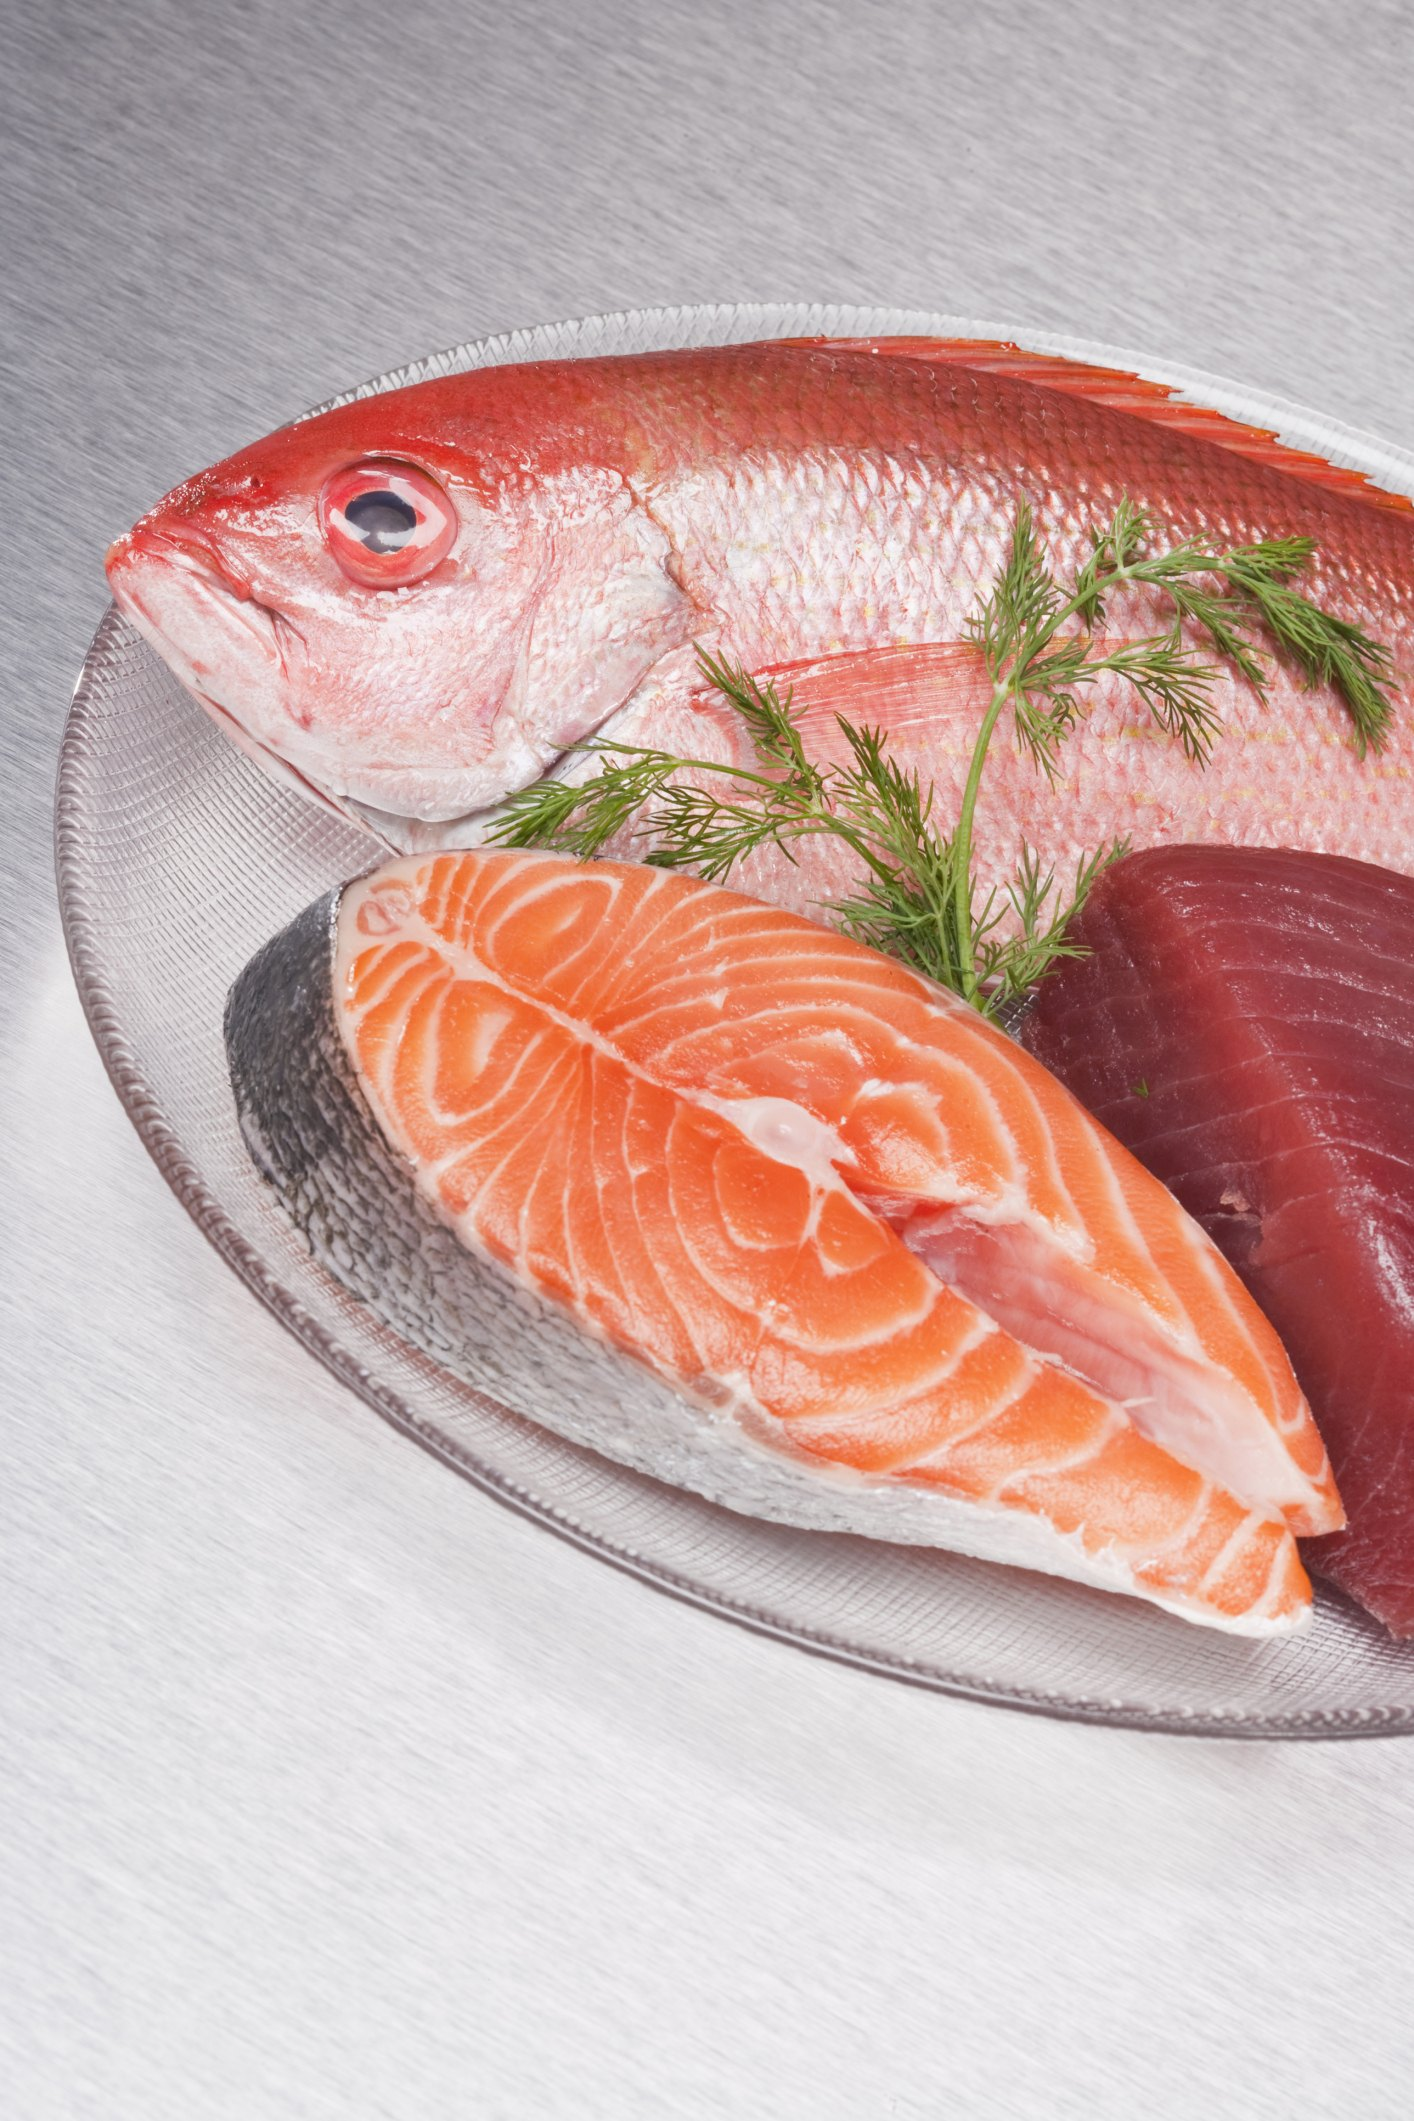 Different Cuts Of Fish Meat With Pictures Ehow